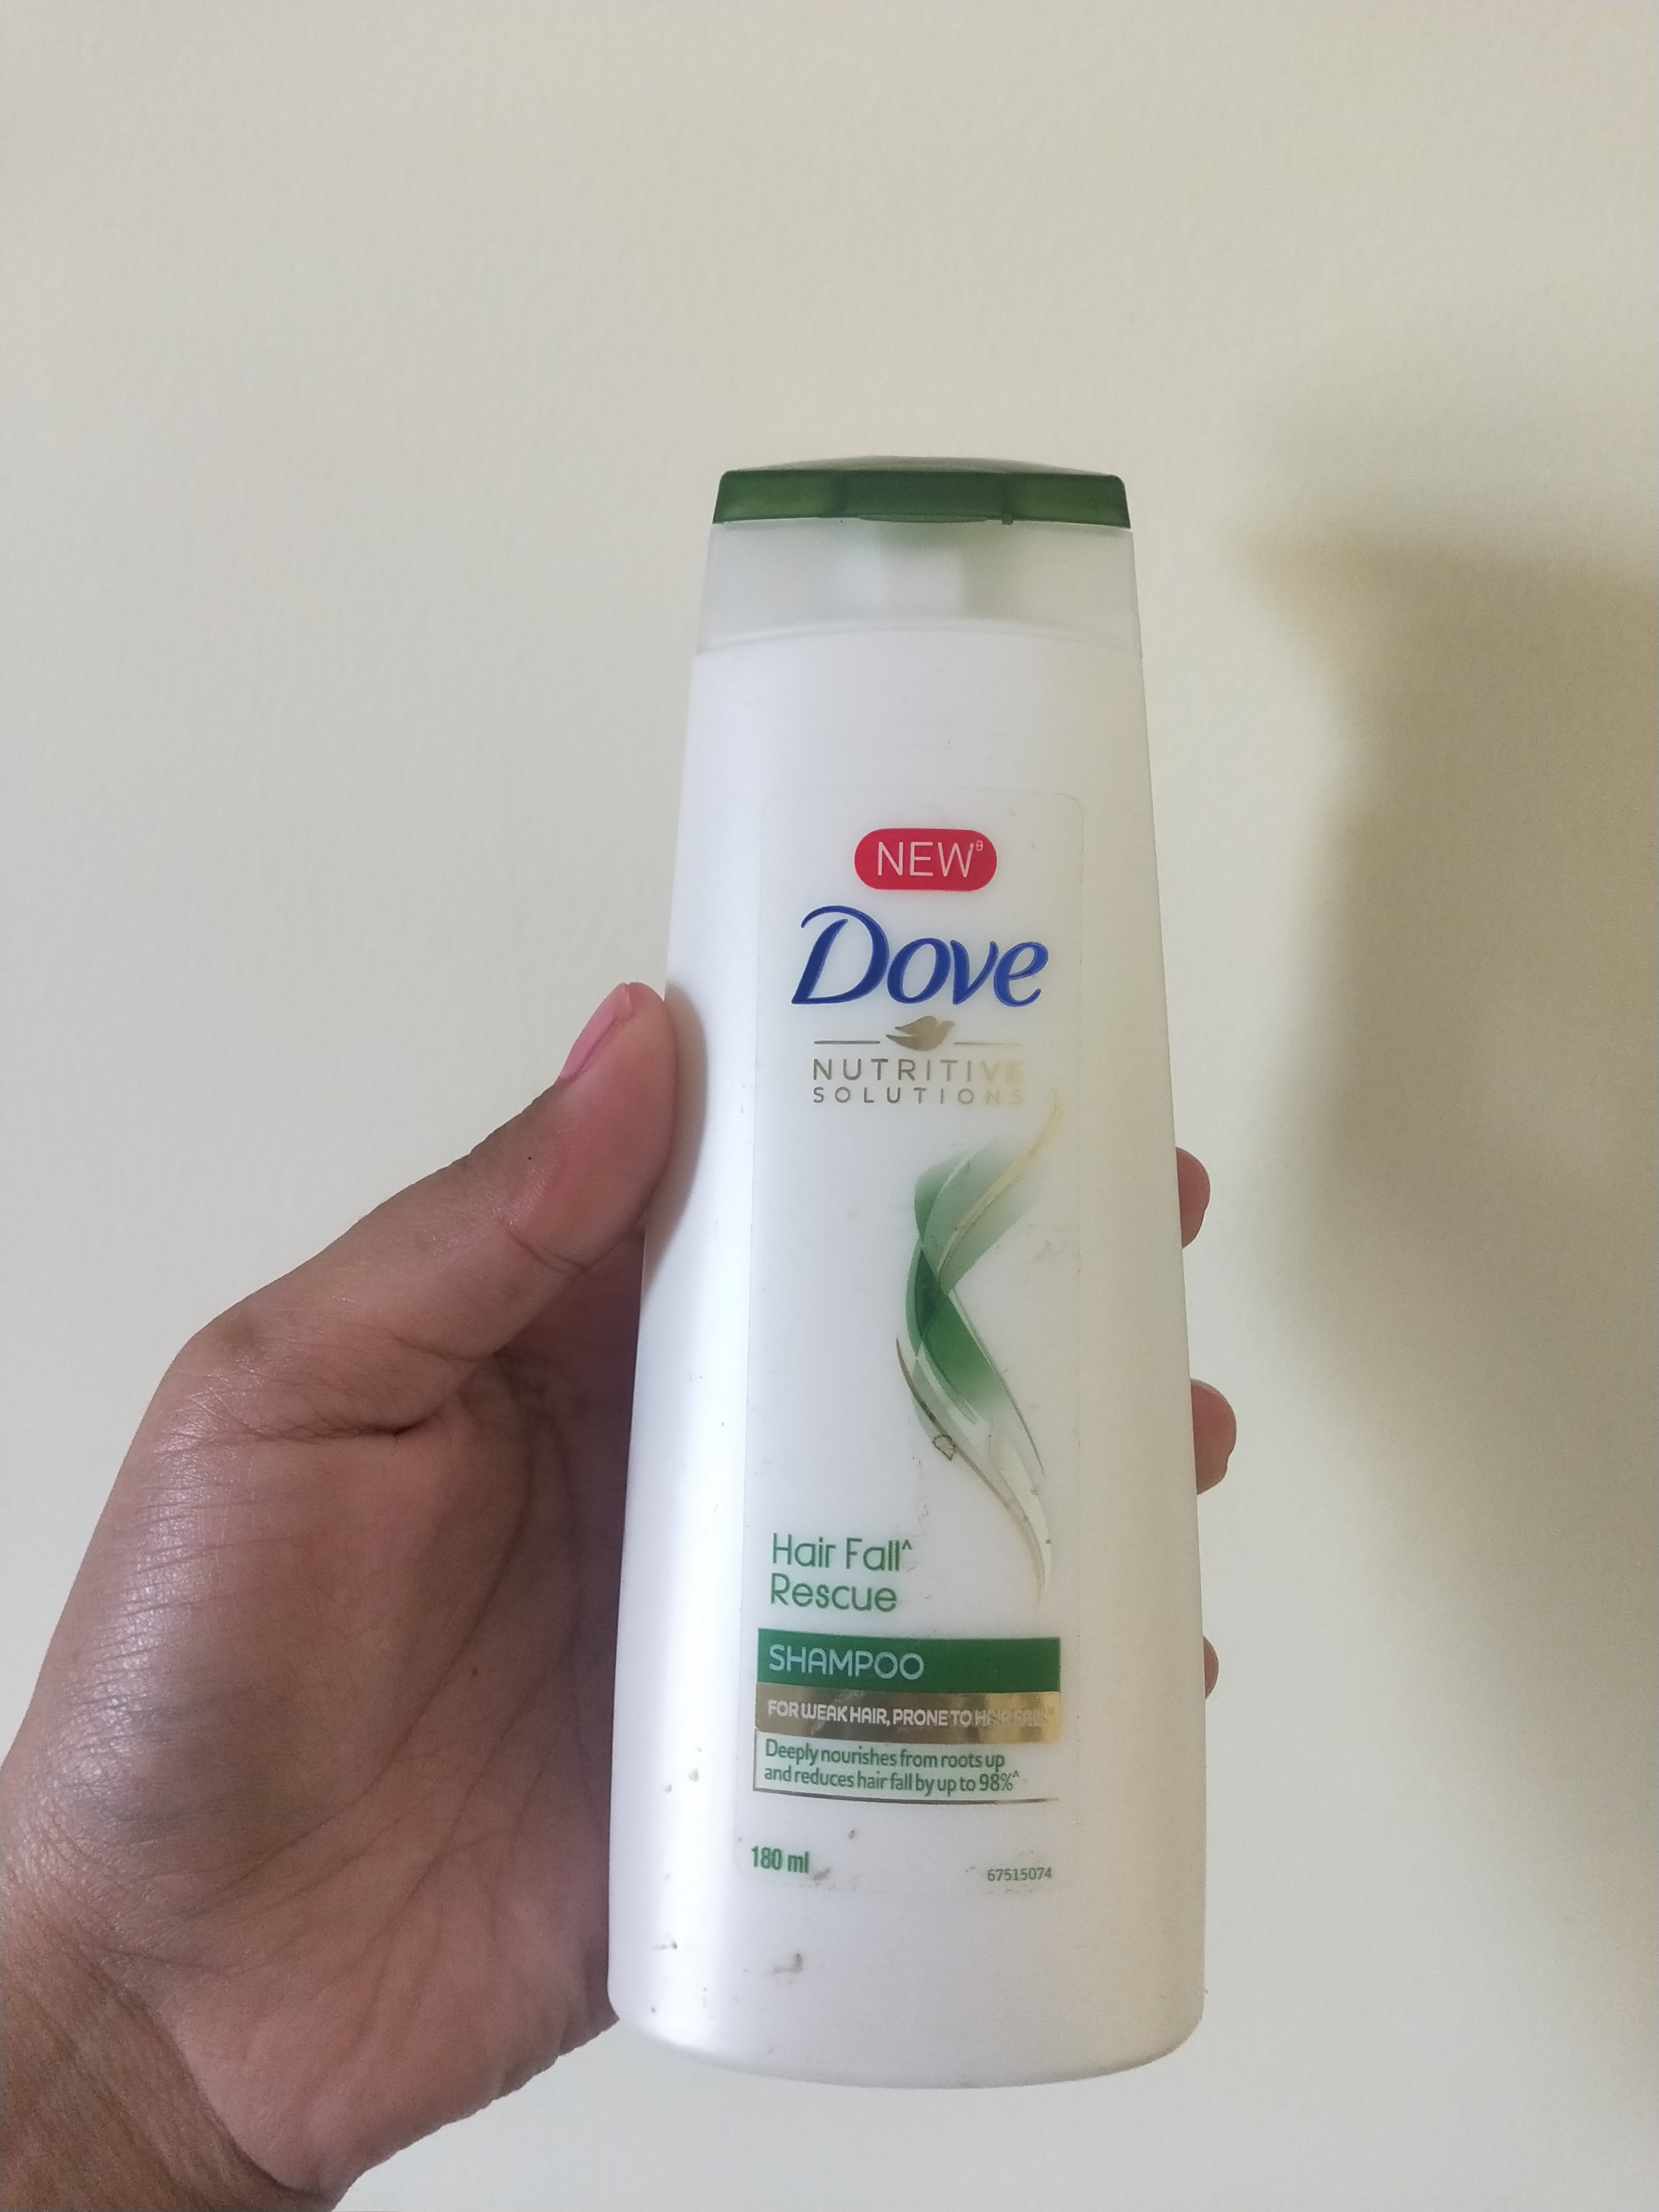 Dove Hair Fall Rescue Shampoo-Controls hairfall and frizz-By miss_hungry_soul-1